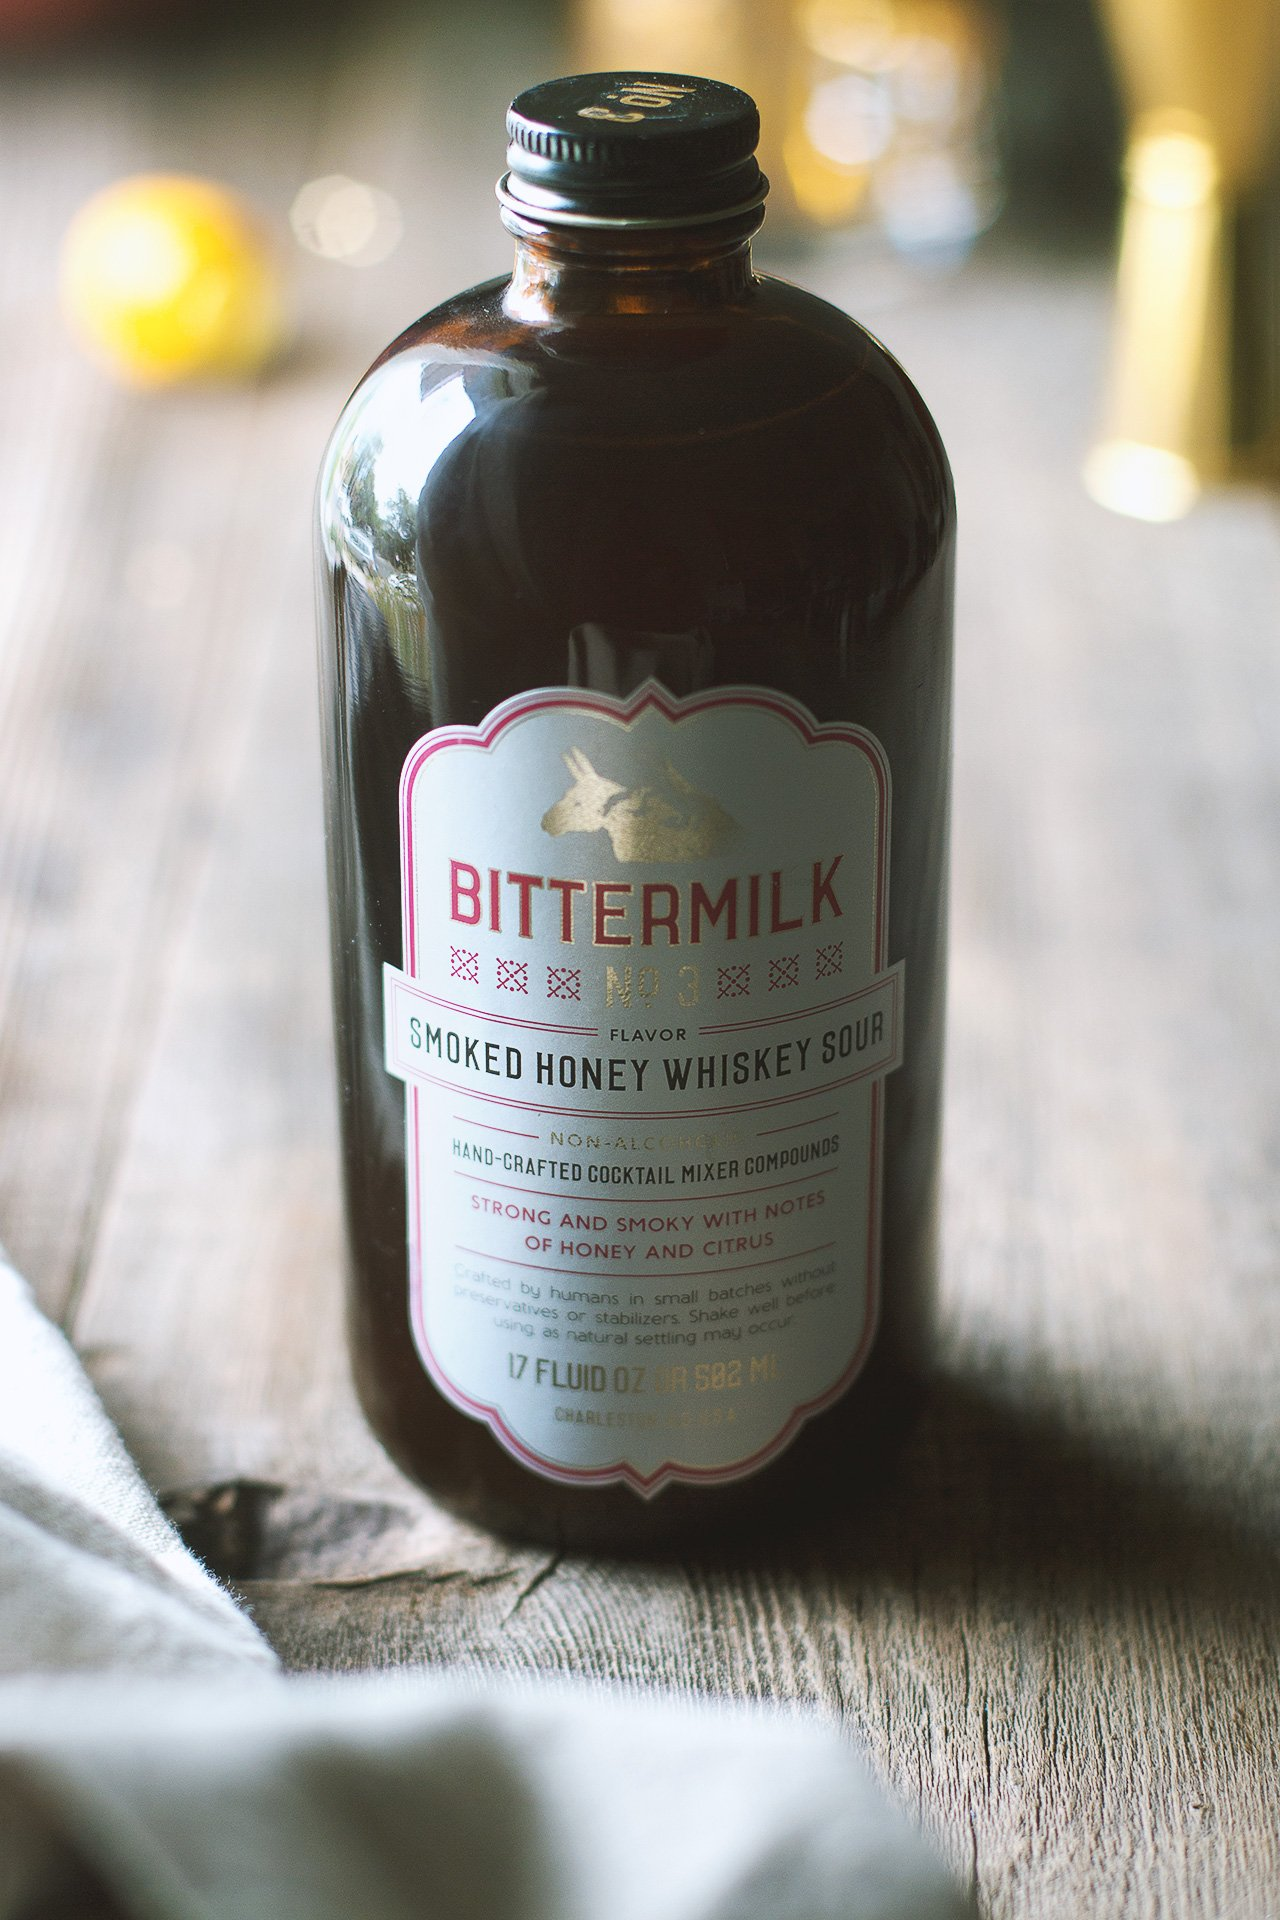 Bittermilk Smoked Honey Whiskey Sour | Photographed by HonestlyYUM